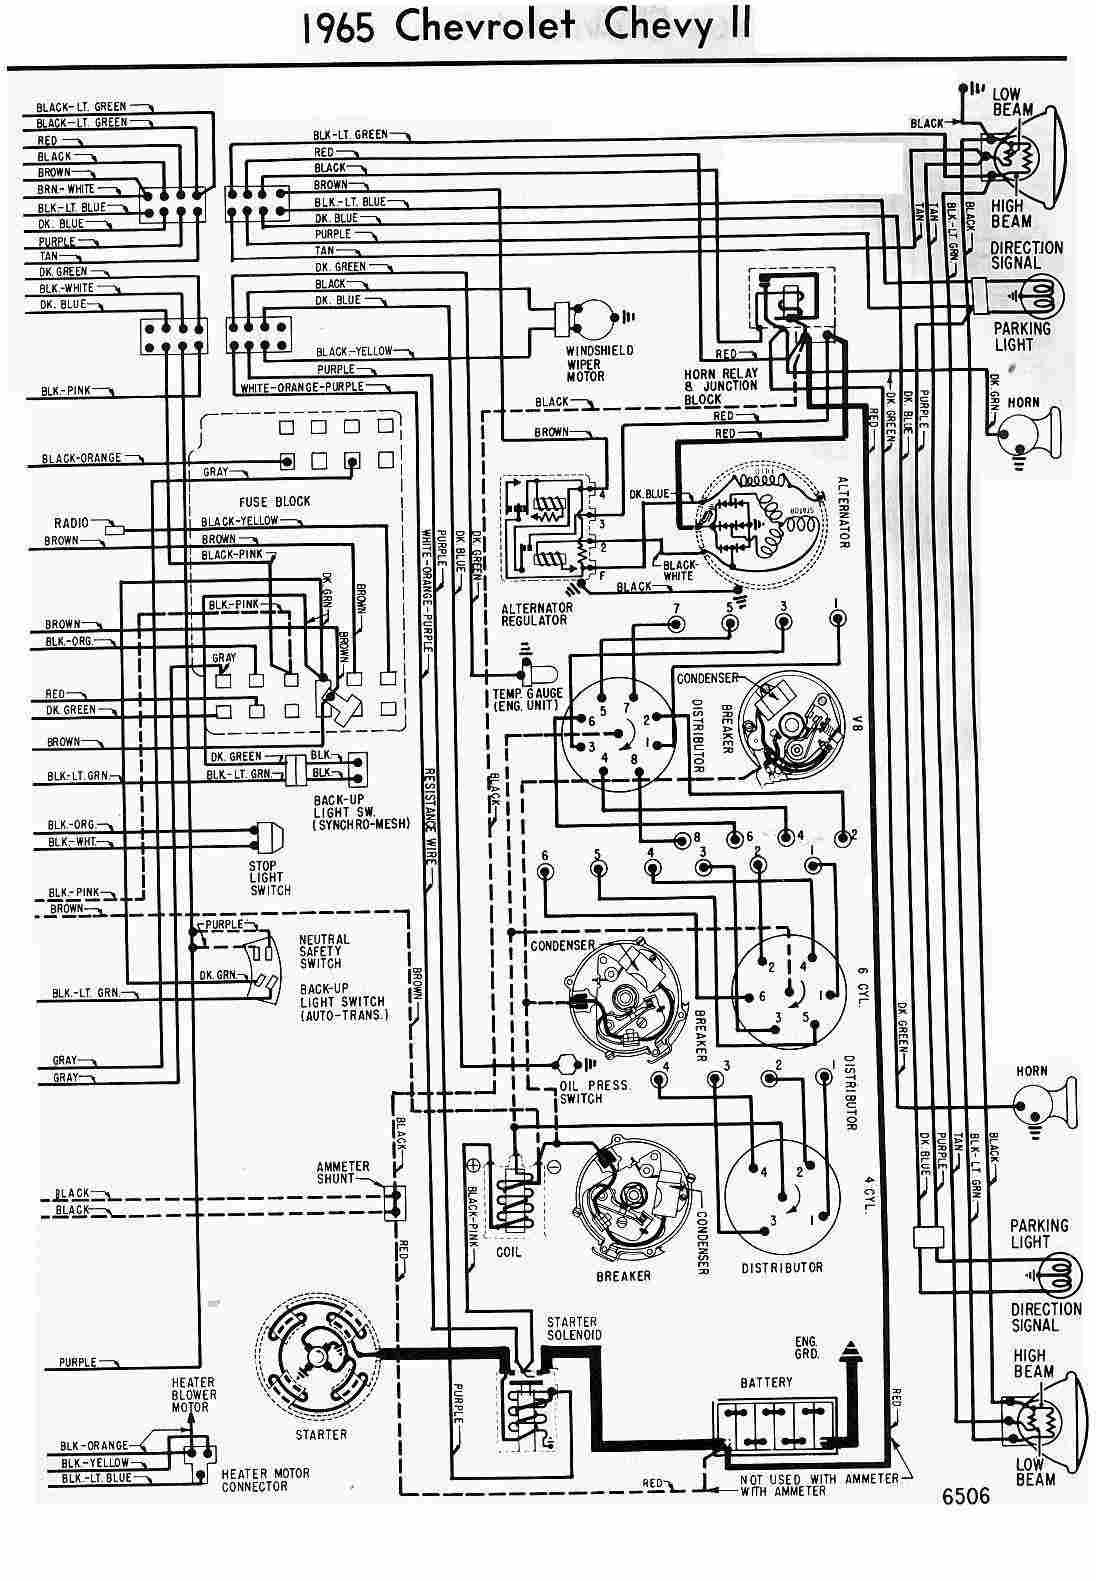 hight resolution of 68 caprice wire diagram wiring diagram68 caprice wire diagram wiring diagram ebook68 caprice wire diagram wiring